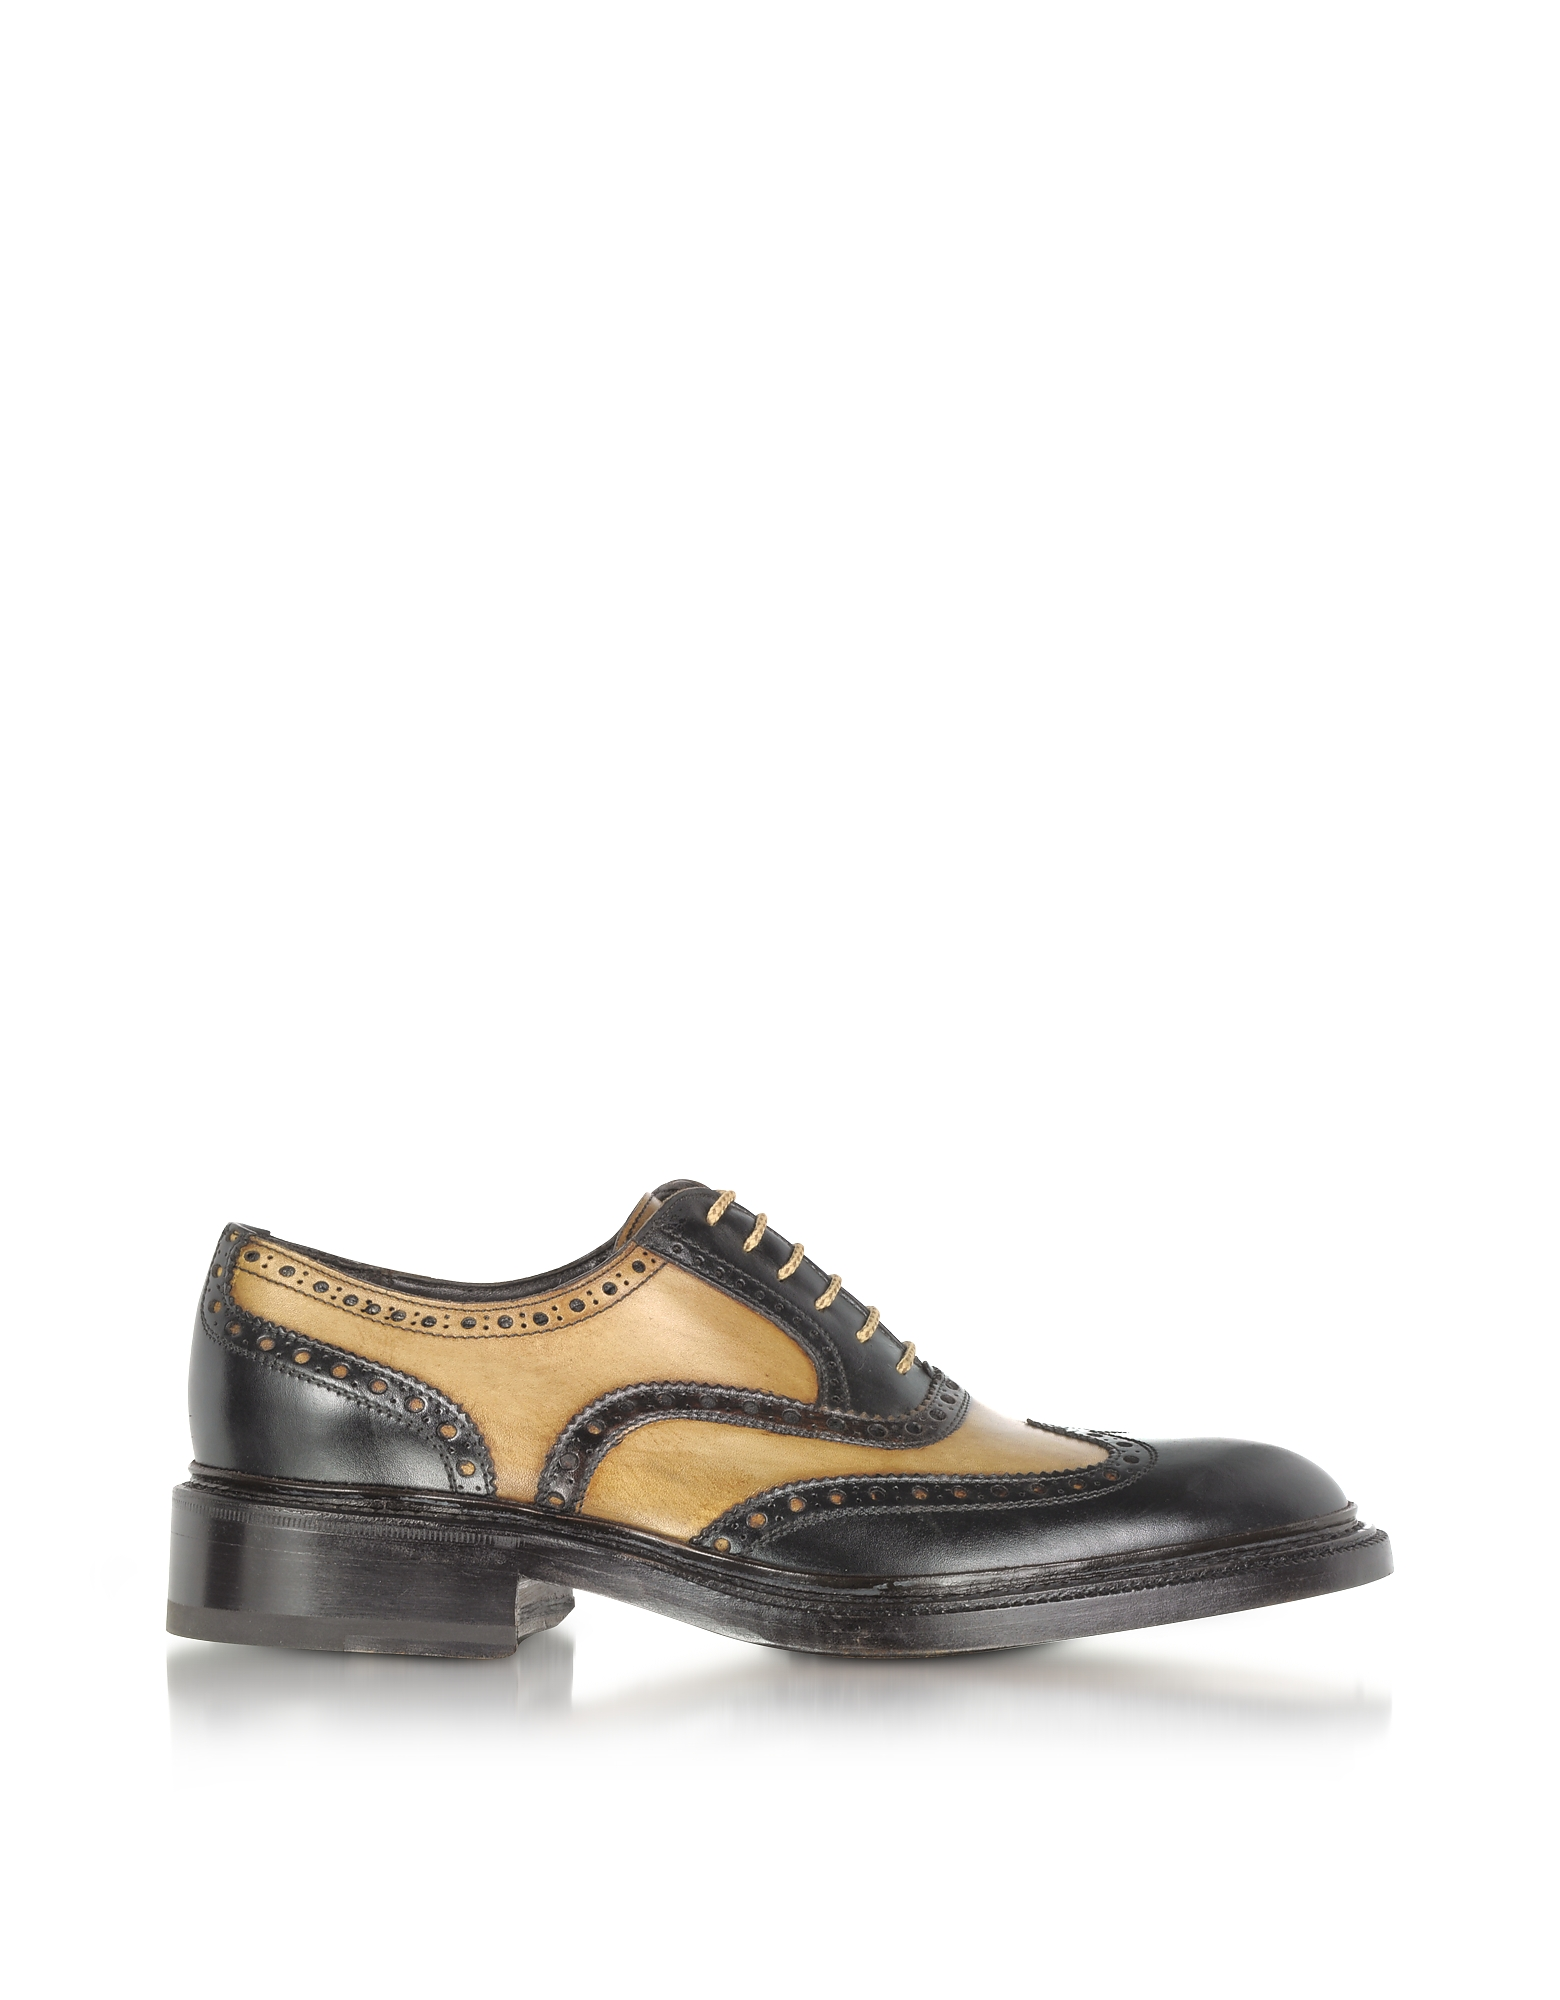 Men's 1950s Shoes Styles- Classics to Saddles to Rockabilly Boardwalk Empire Forzieri  Shoes Italian Handcrafted Two-tone Wingtip Oxford Shoes $891.00 AT vintagedancer.com